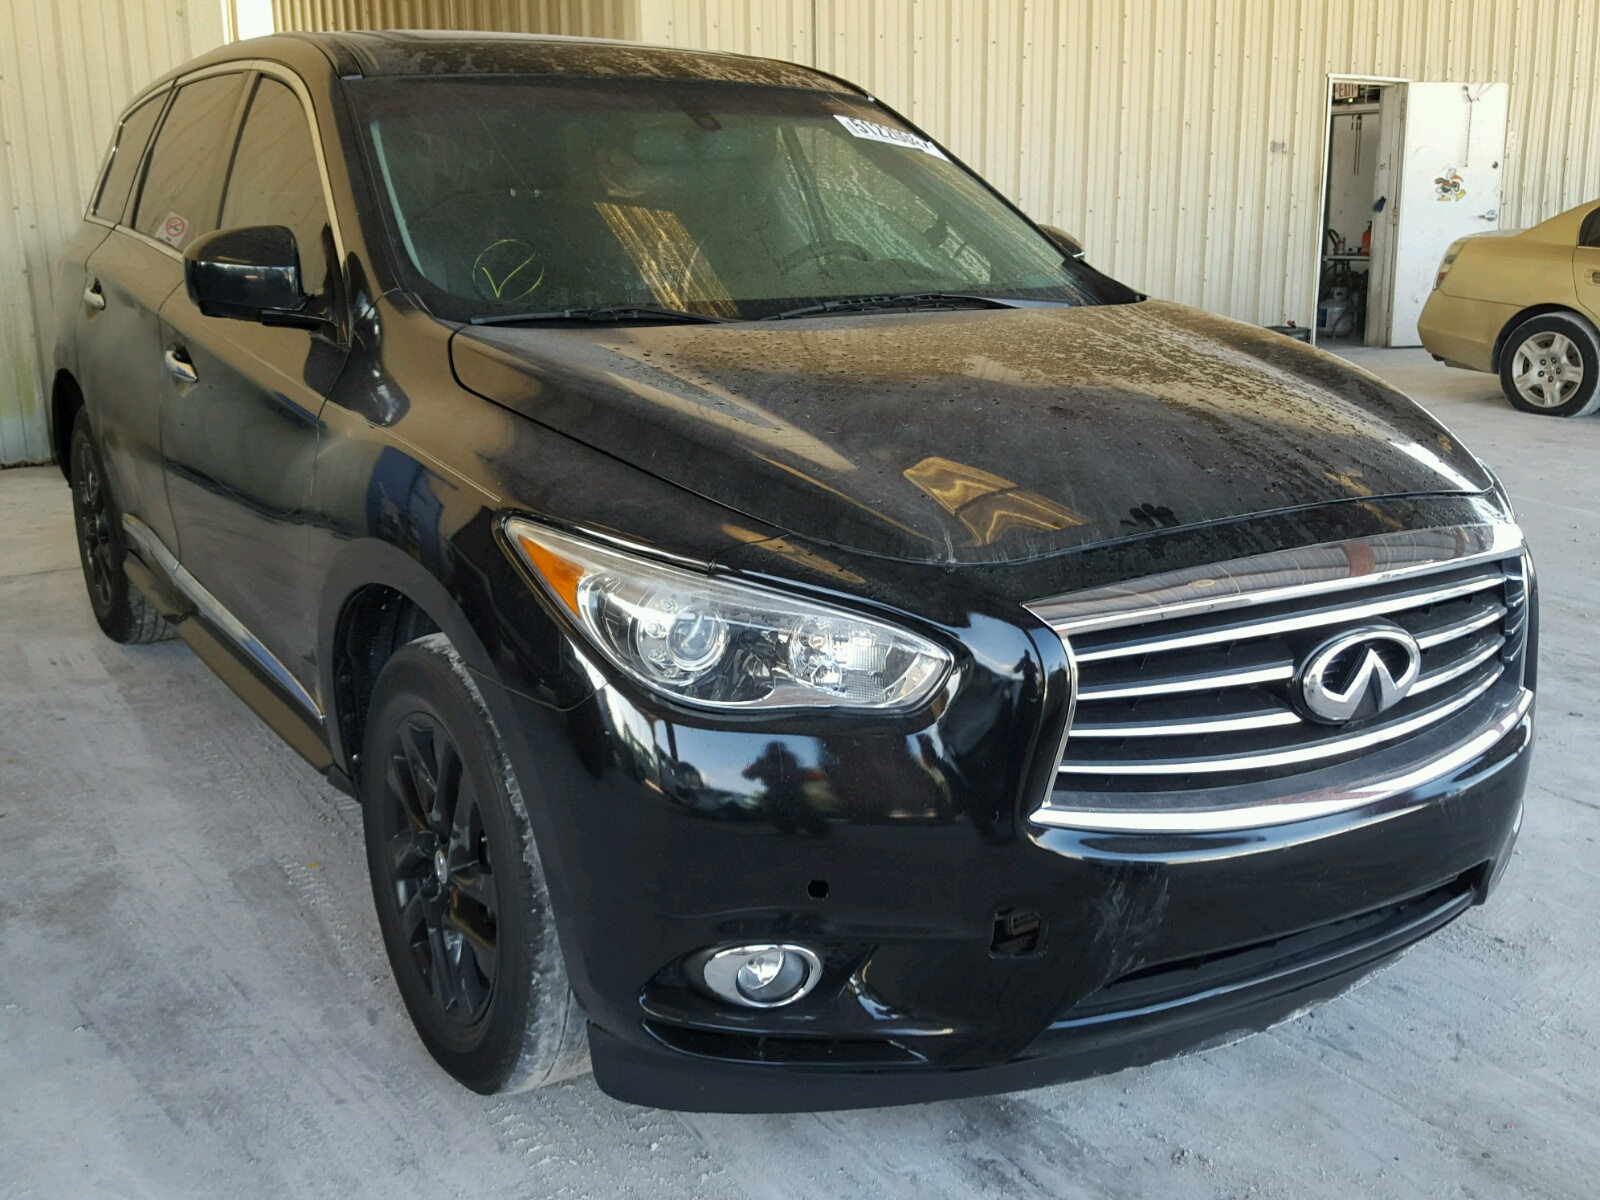 app damage sold side base infiniti infinity